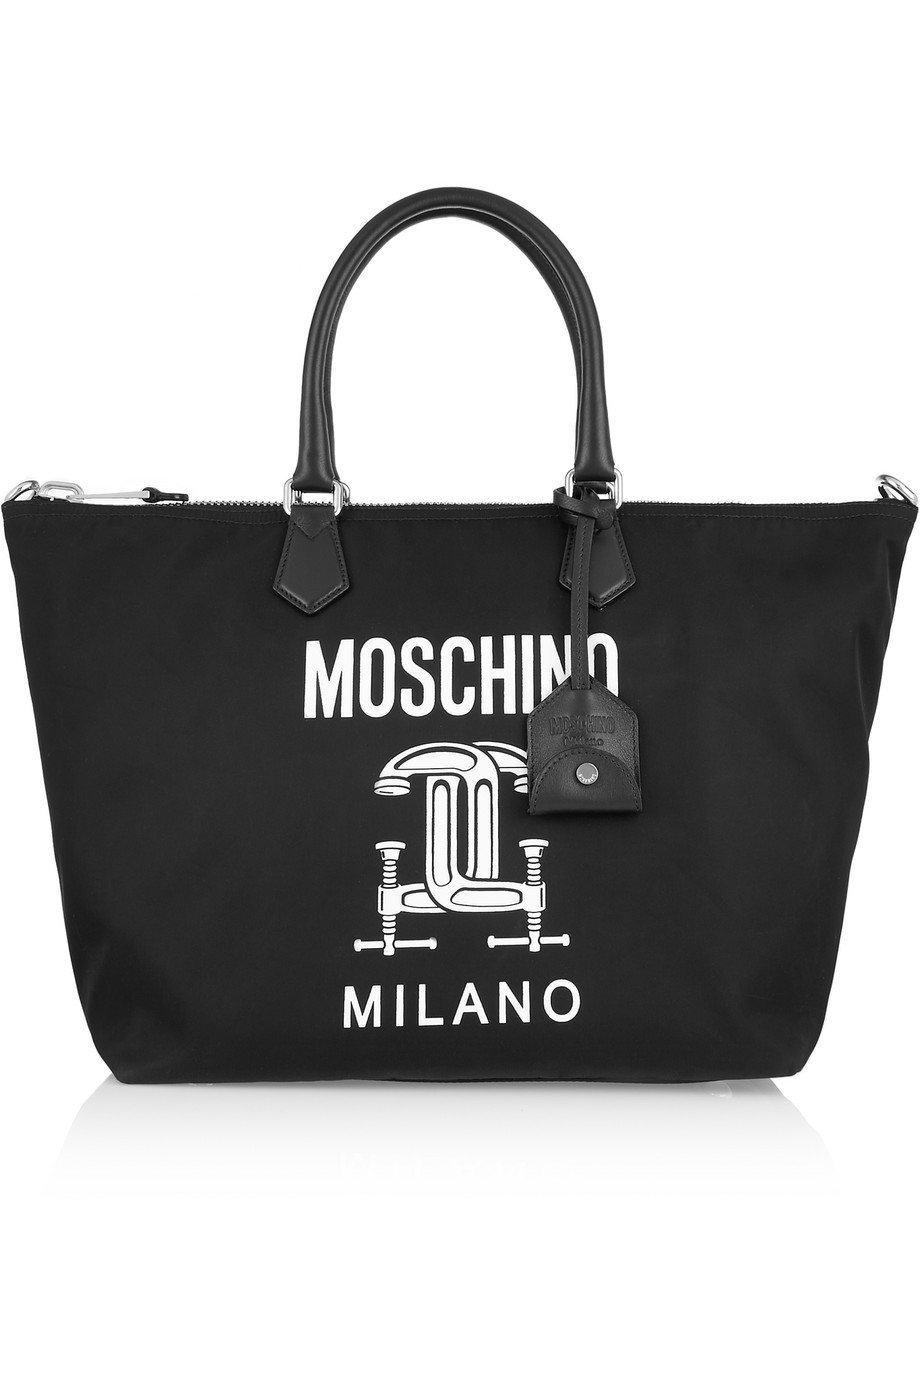 Moschino Faux Leather-Trimmed Printed Shell Tote, Black, Women's